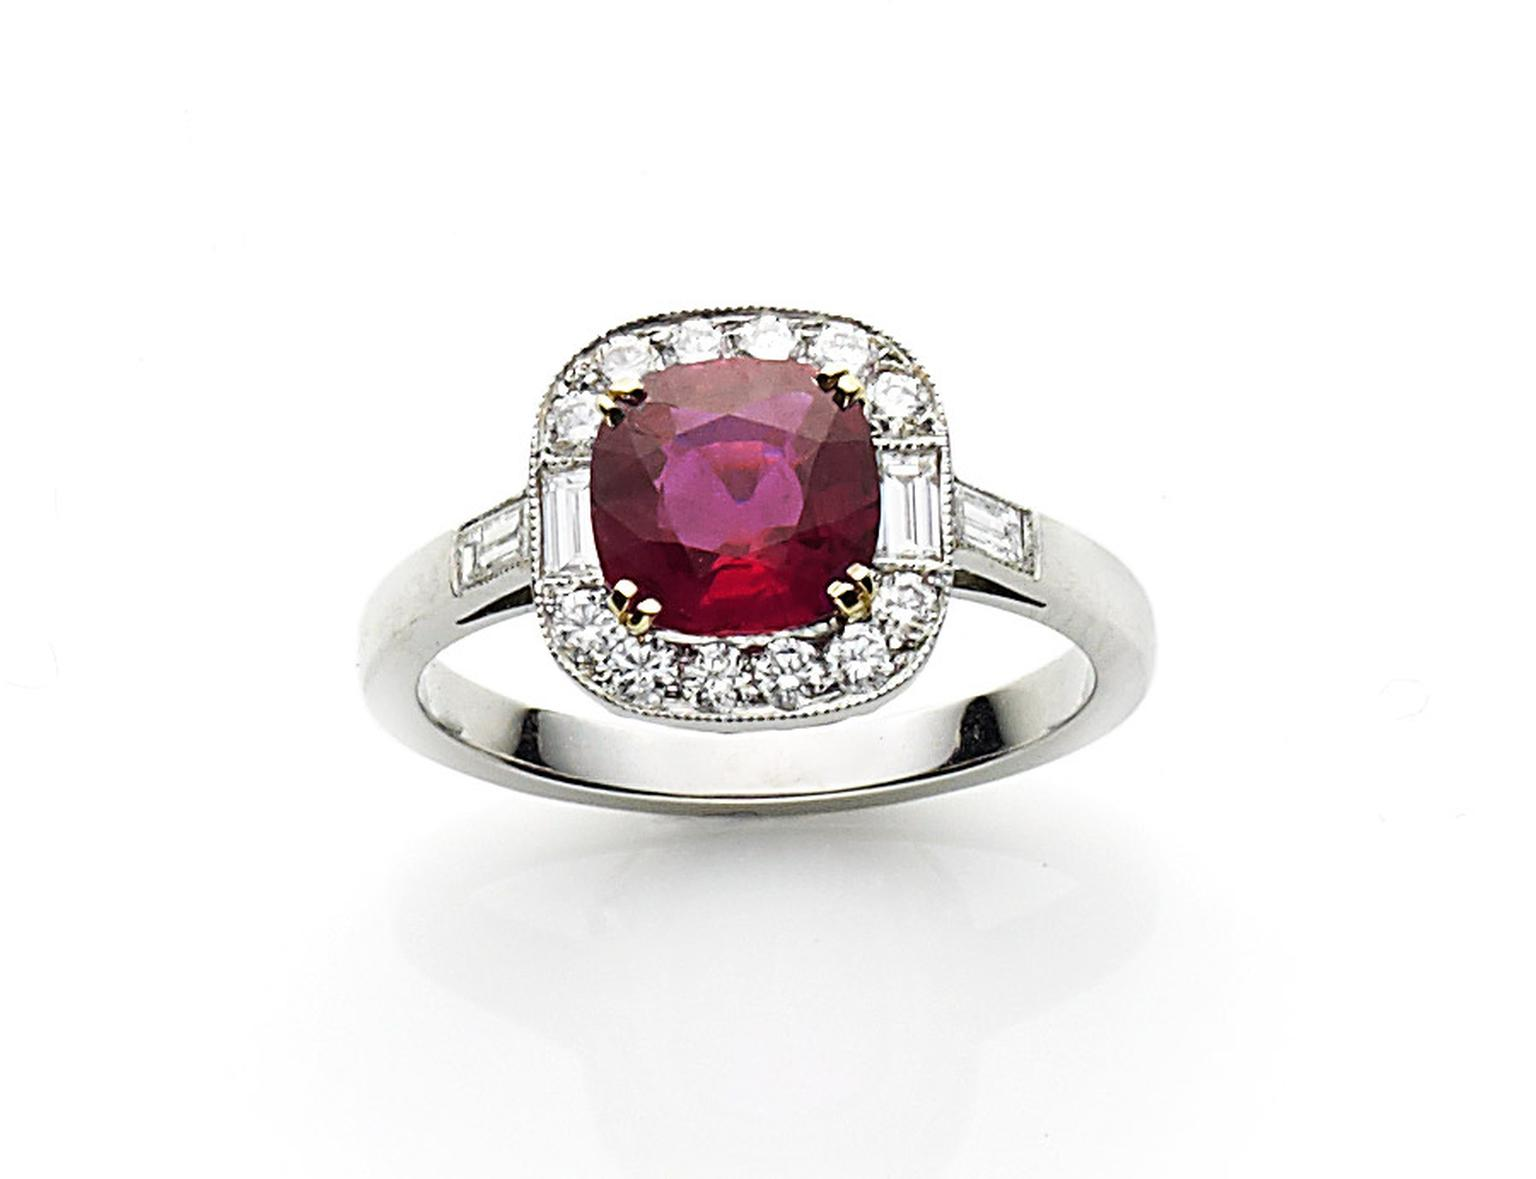 Burlington-Arcade-Ruby-and-diamond-cluster-ring-by-Richard-Ogden.jpg